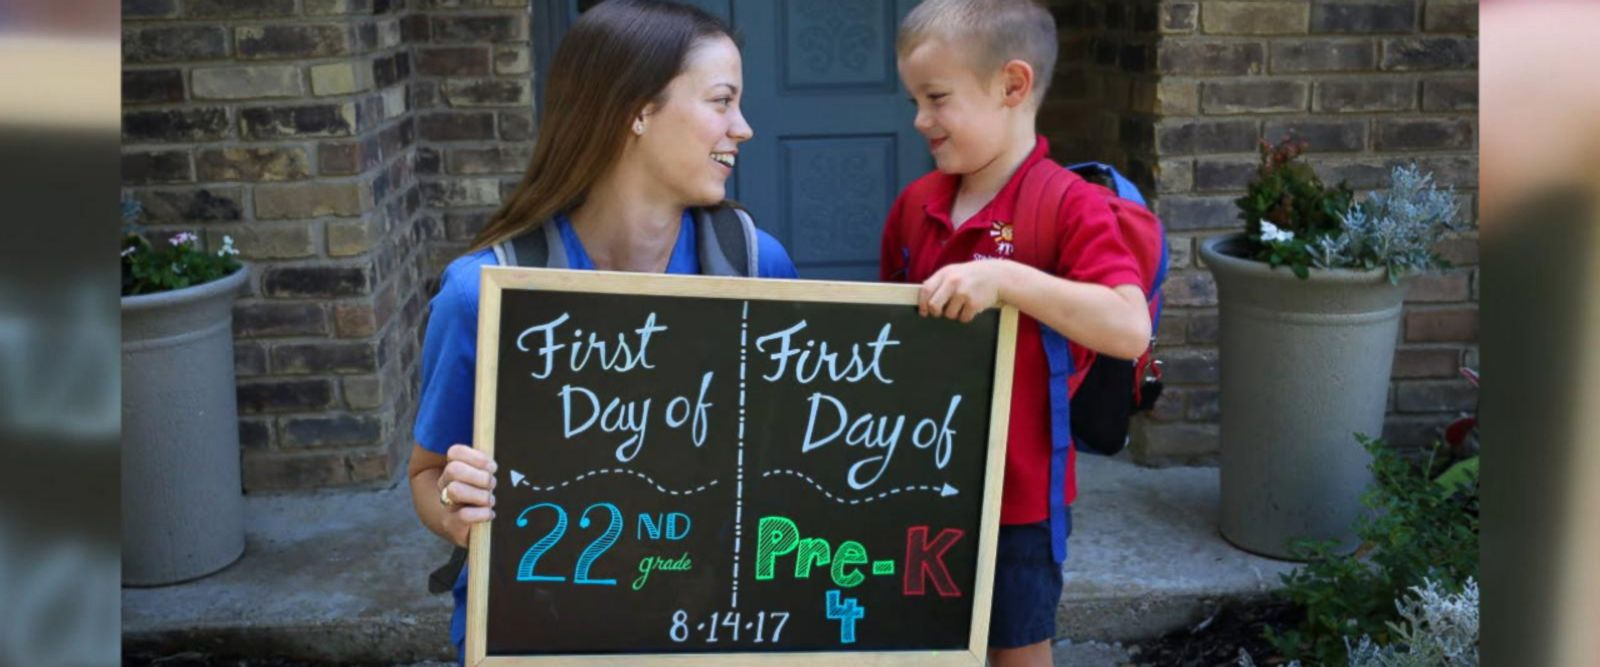 Katie Tucker and son Edric, 4, of Dallas, commemorated their first days of school with an adorable photo announcement.